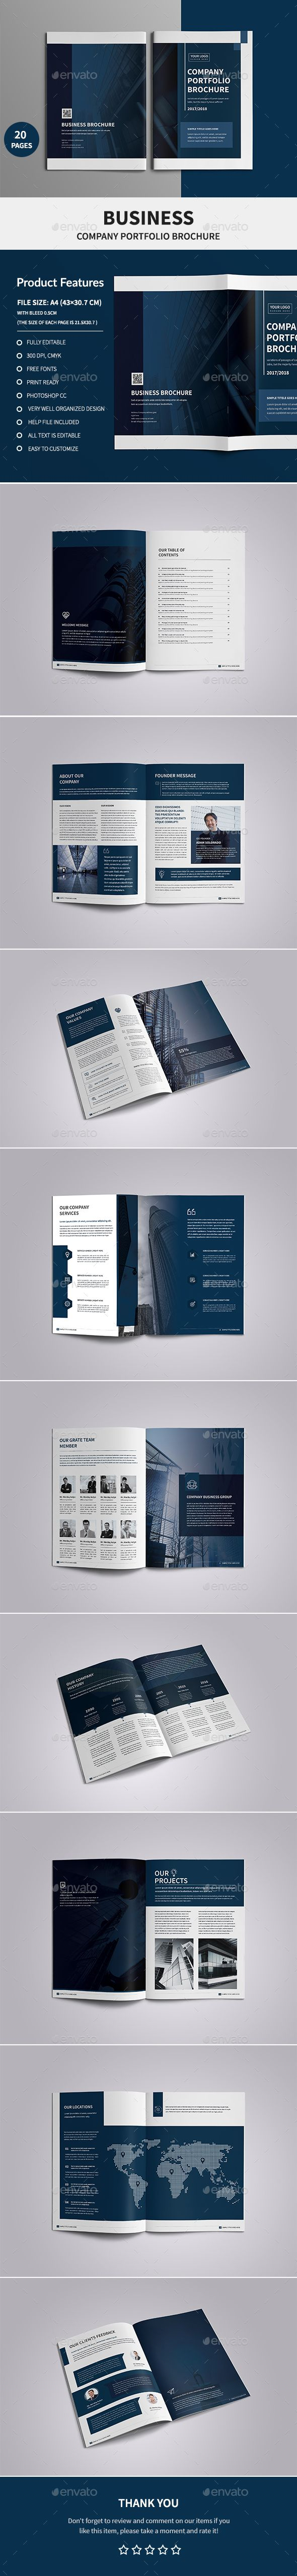 Corporate Company Profile Brochure Template PSD - 20 Pages